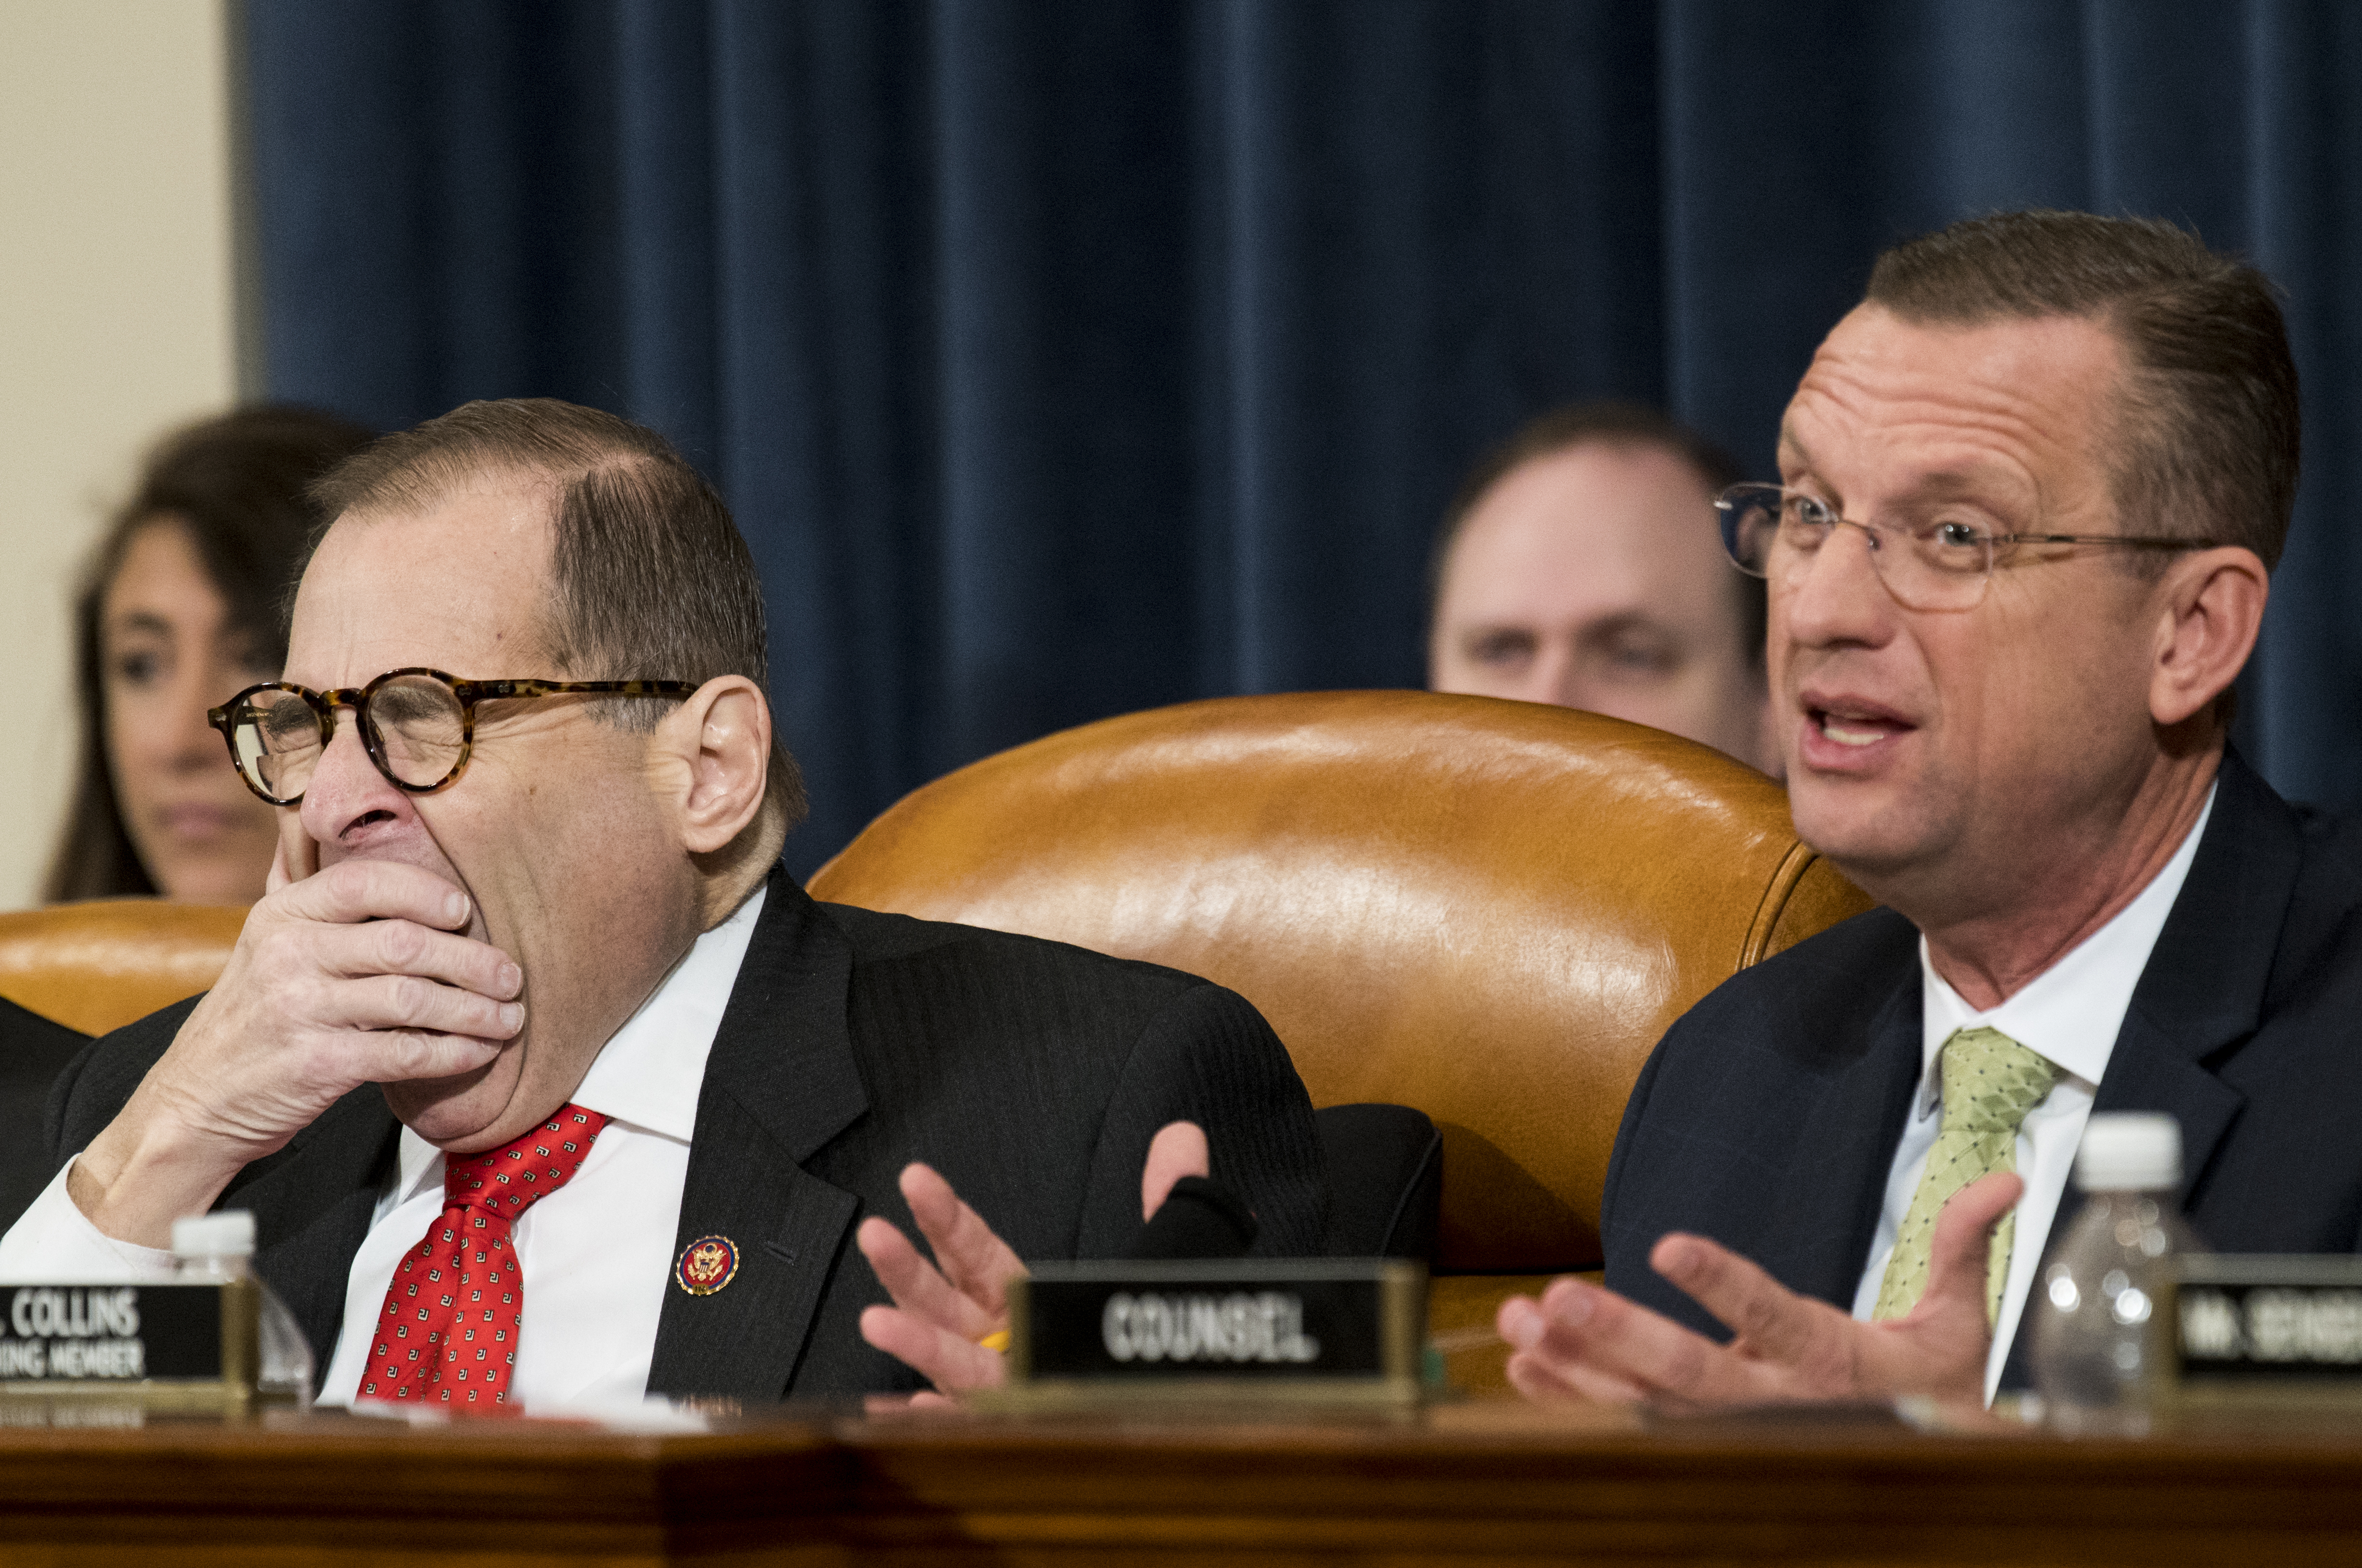 UNITED STATES - DECEMBER 12: Chairman Jerrold Nadler, D-N.Y., yawns as ranking member Doug gCollins, R-Ga., speaks during the House Judiciary Committee markup of H.Res.755, Articles of Impeachment Against President Donald J. Trump on Thursday, Dec. 12, 2019. (Photo By Bill Clark/CQ Roll Call)